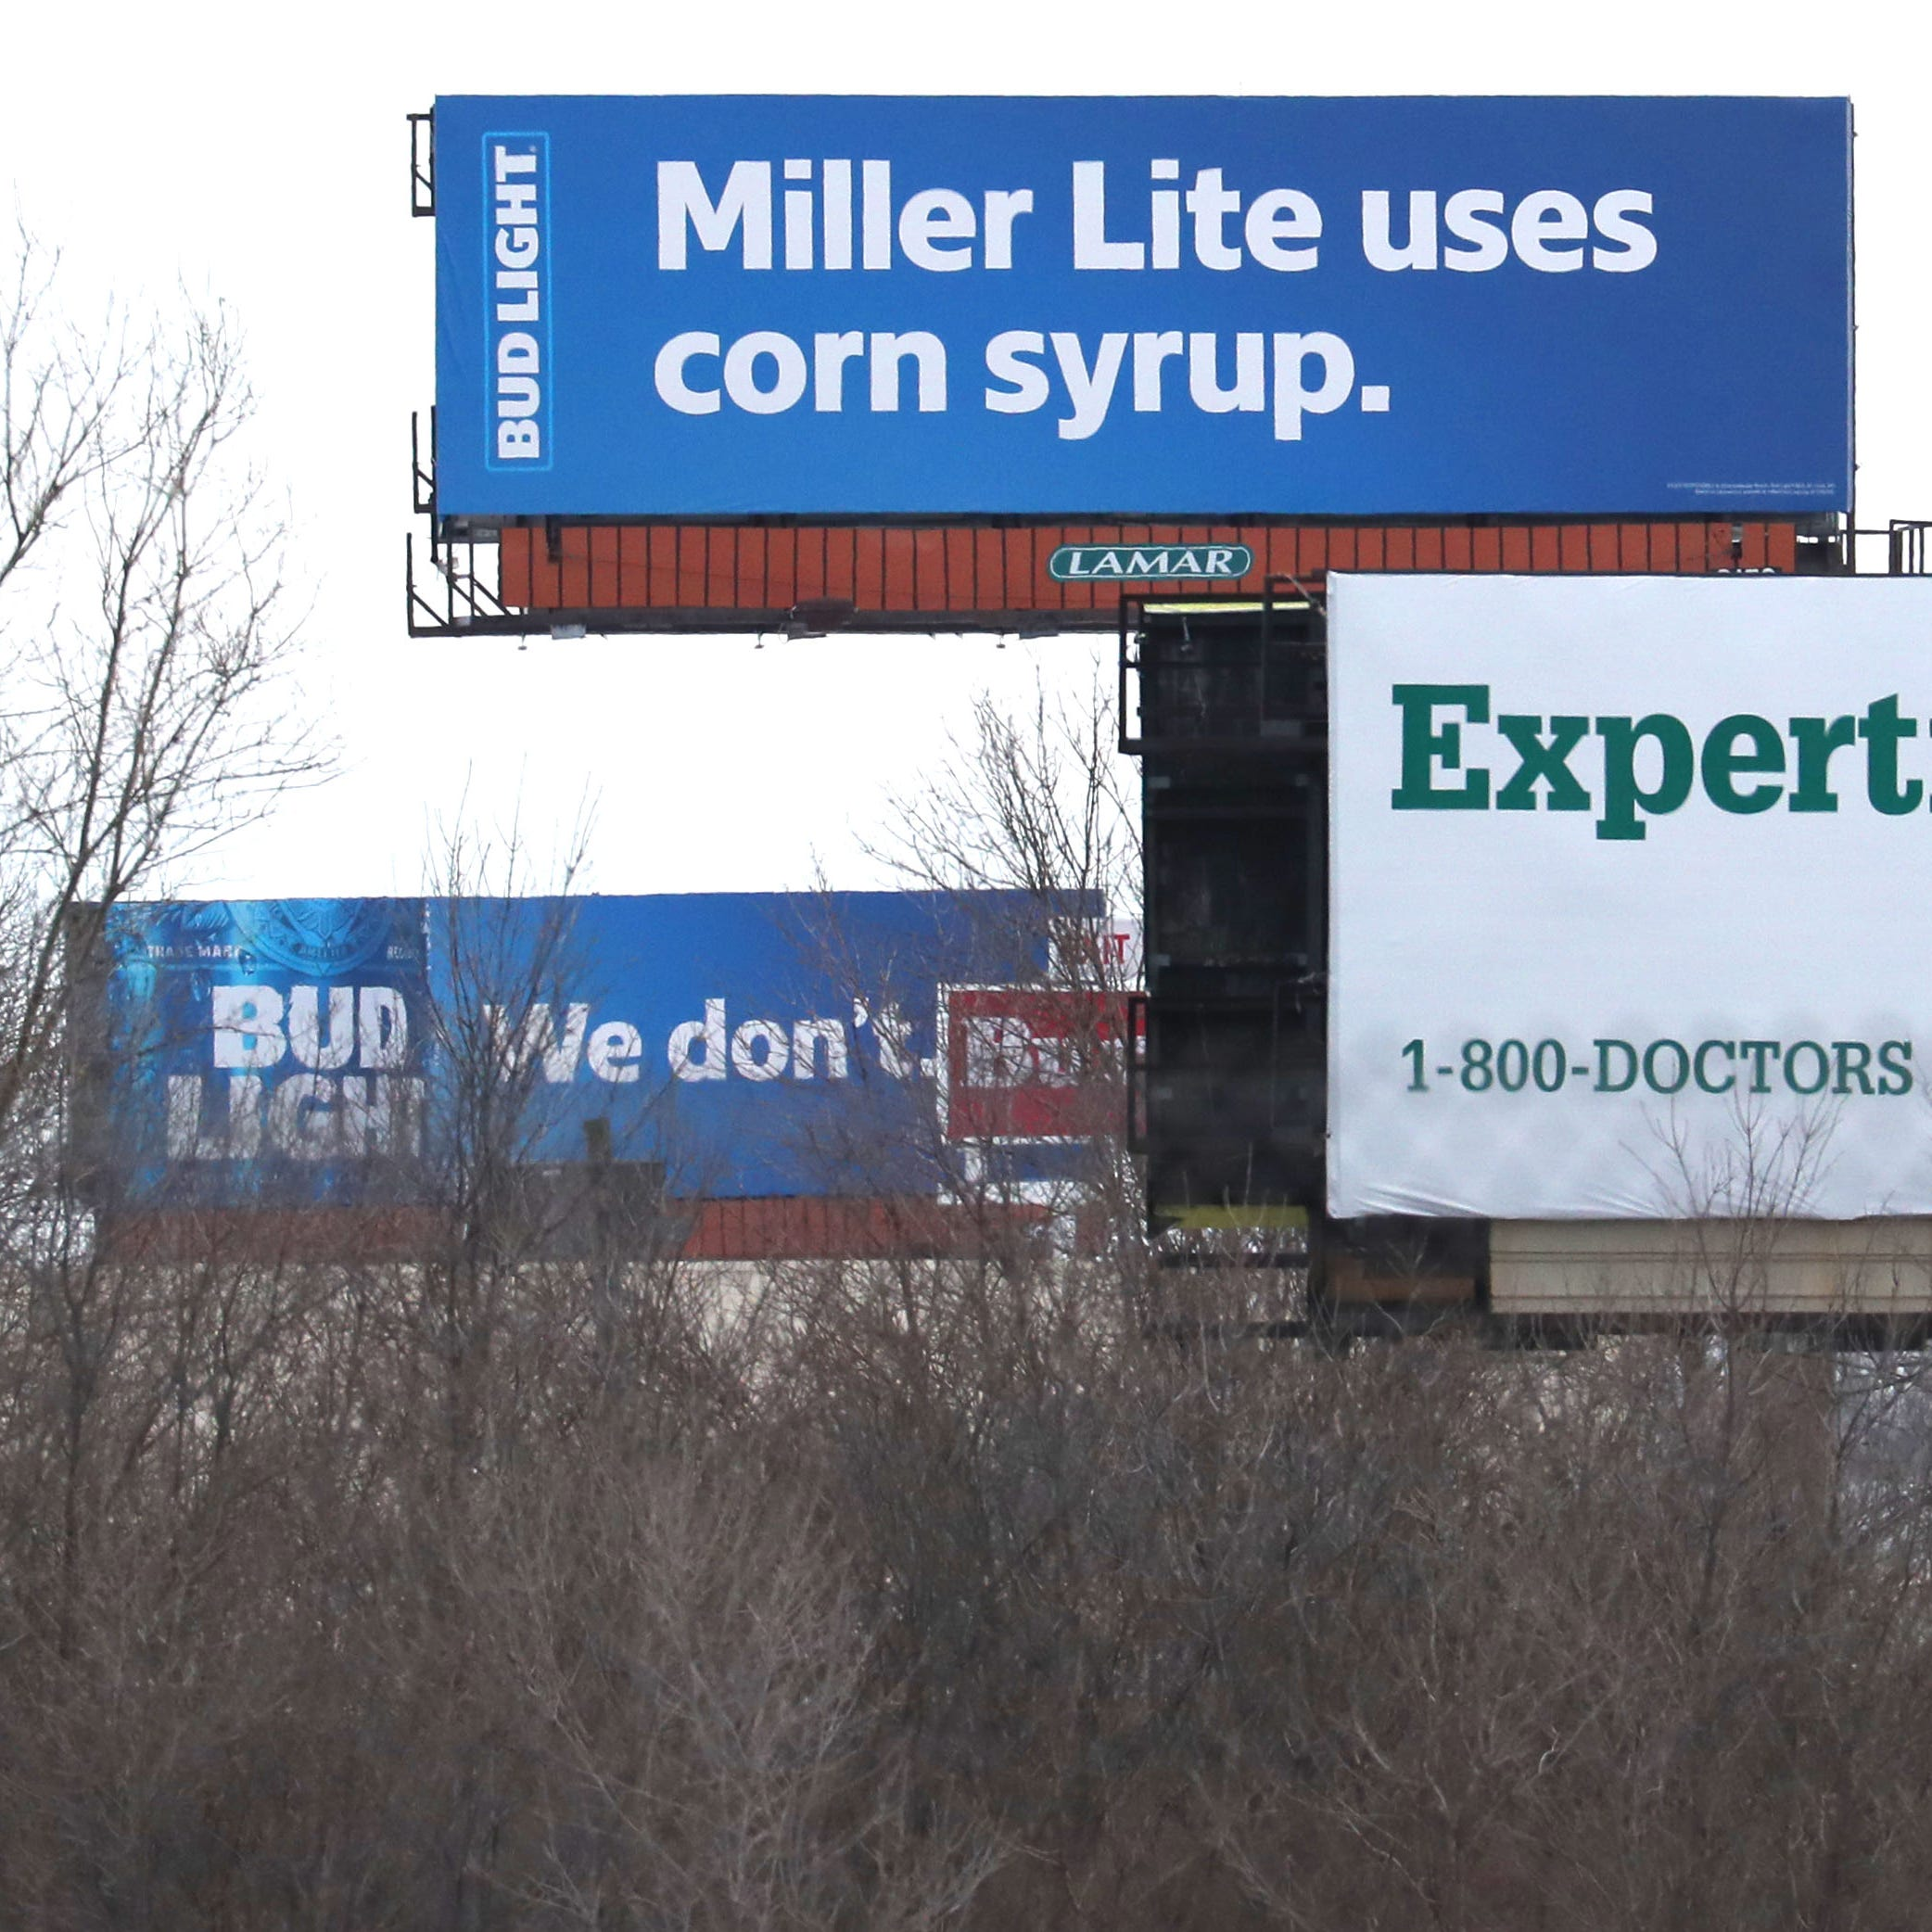 MillerCoors wins preliminary injunction in lawsuit over 'corn syrup' ads